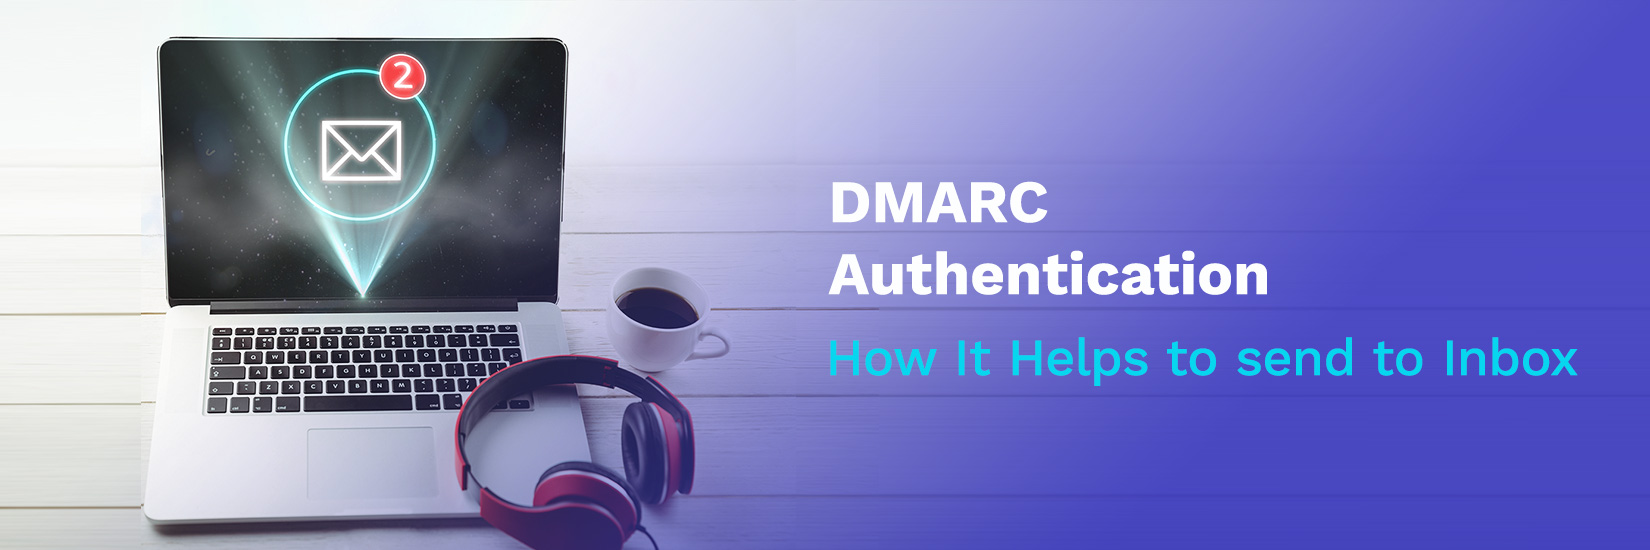 DMARC Authentication